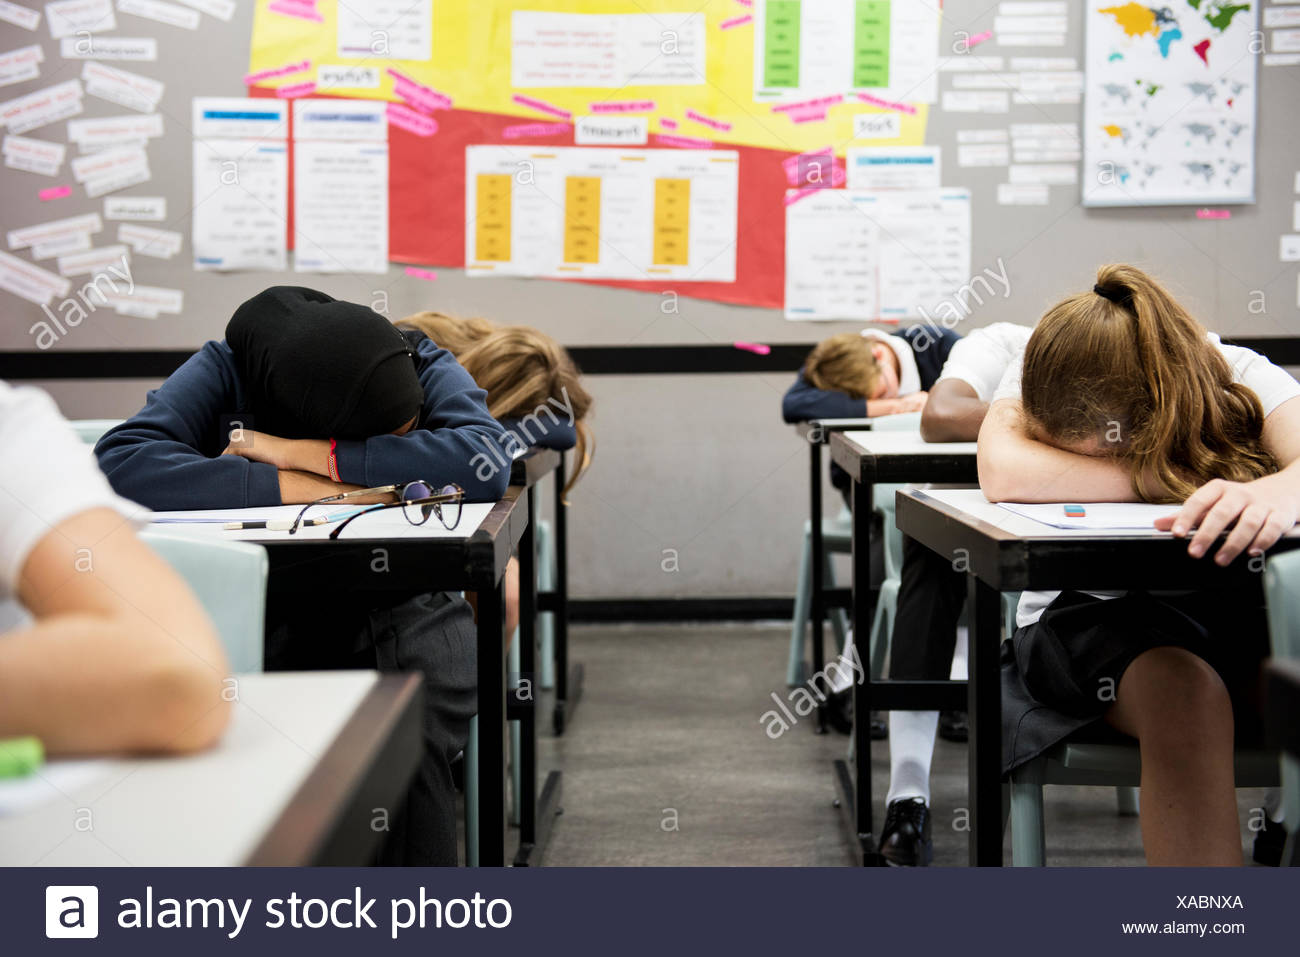 group of students sleeping in the classroom stock photo 281771122